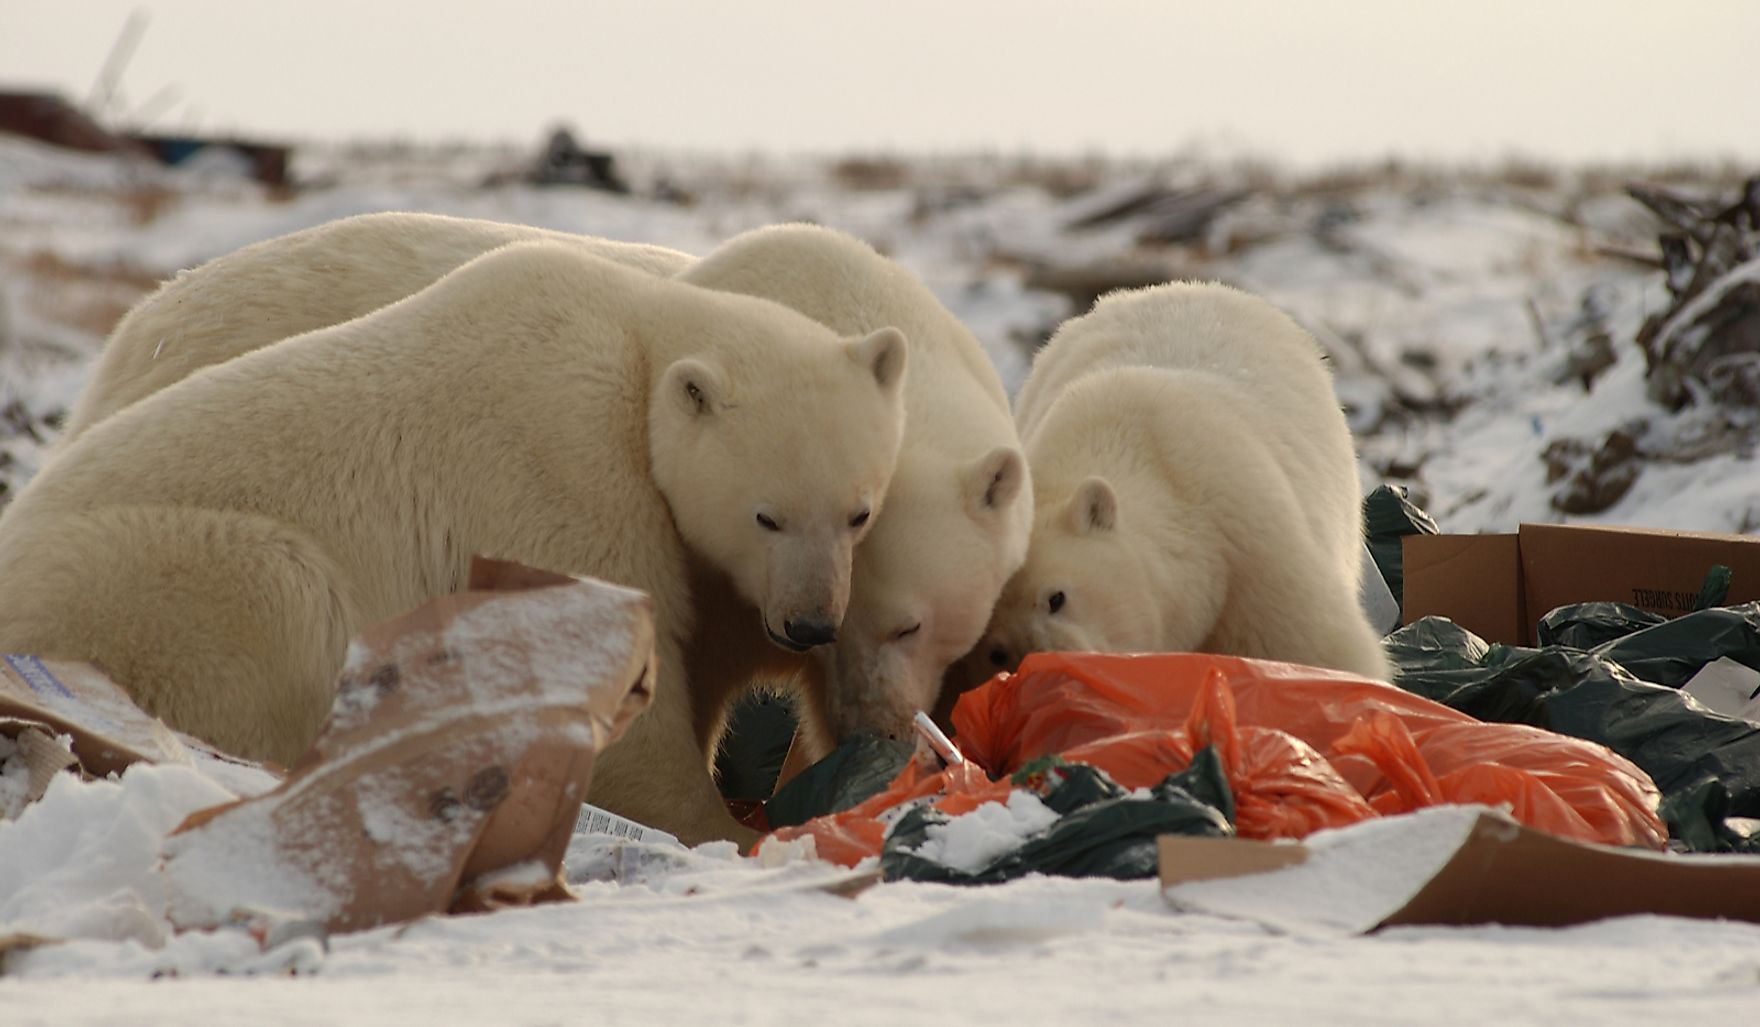 Polar bears feeding on garbage.